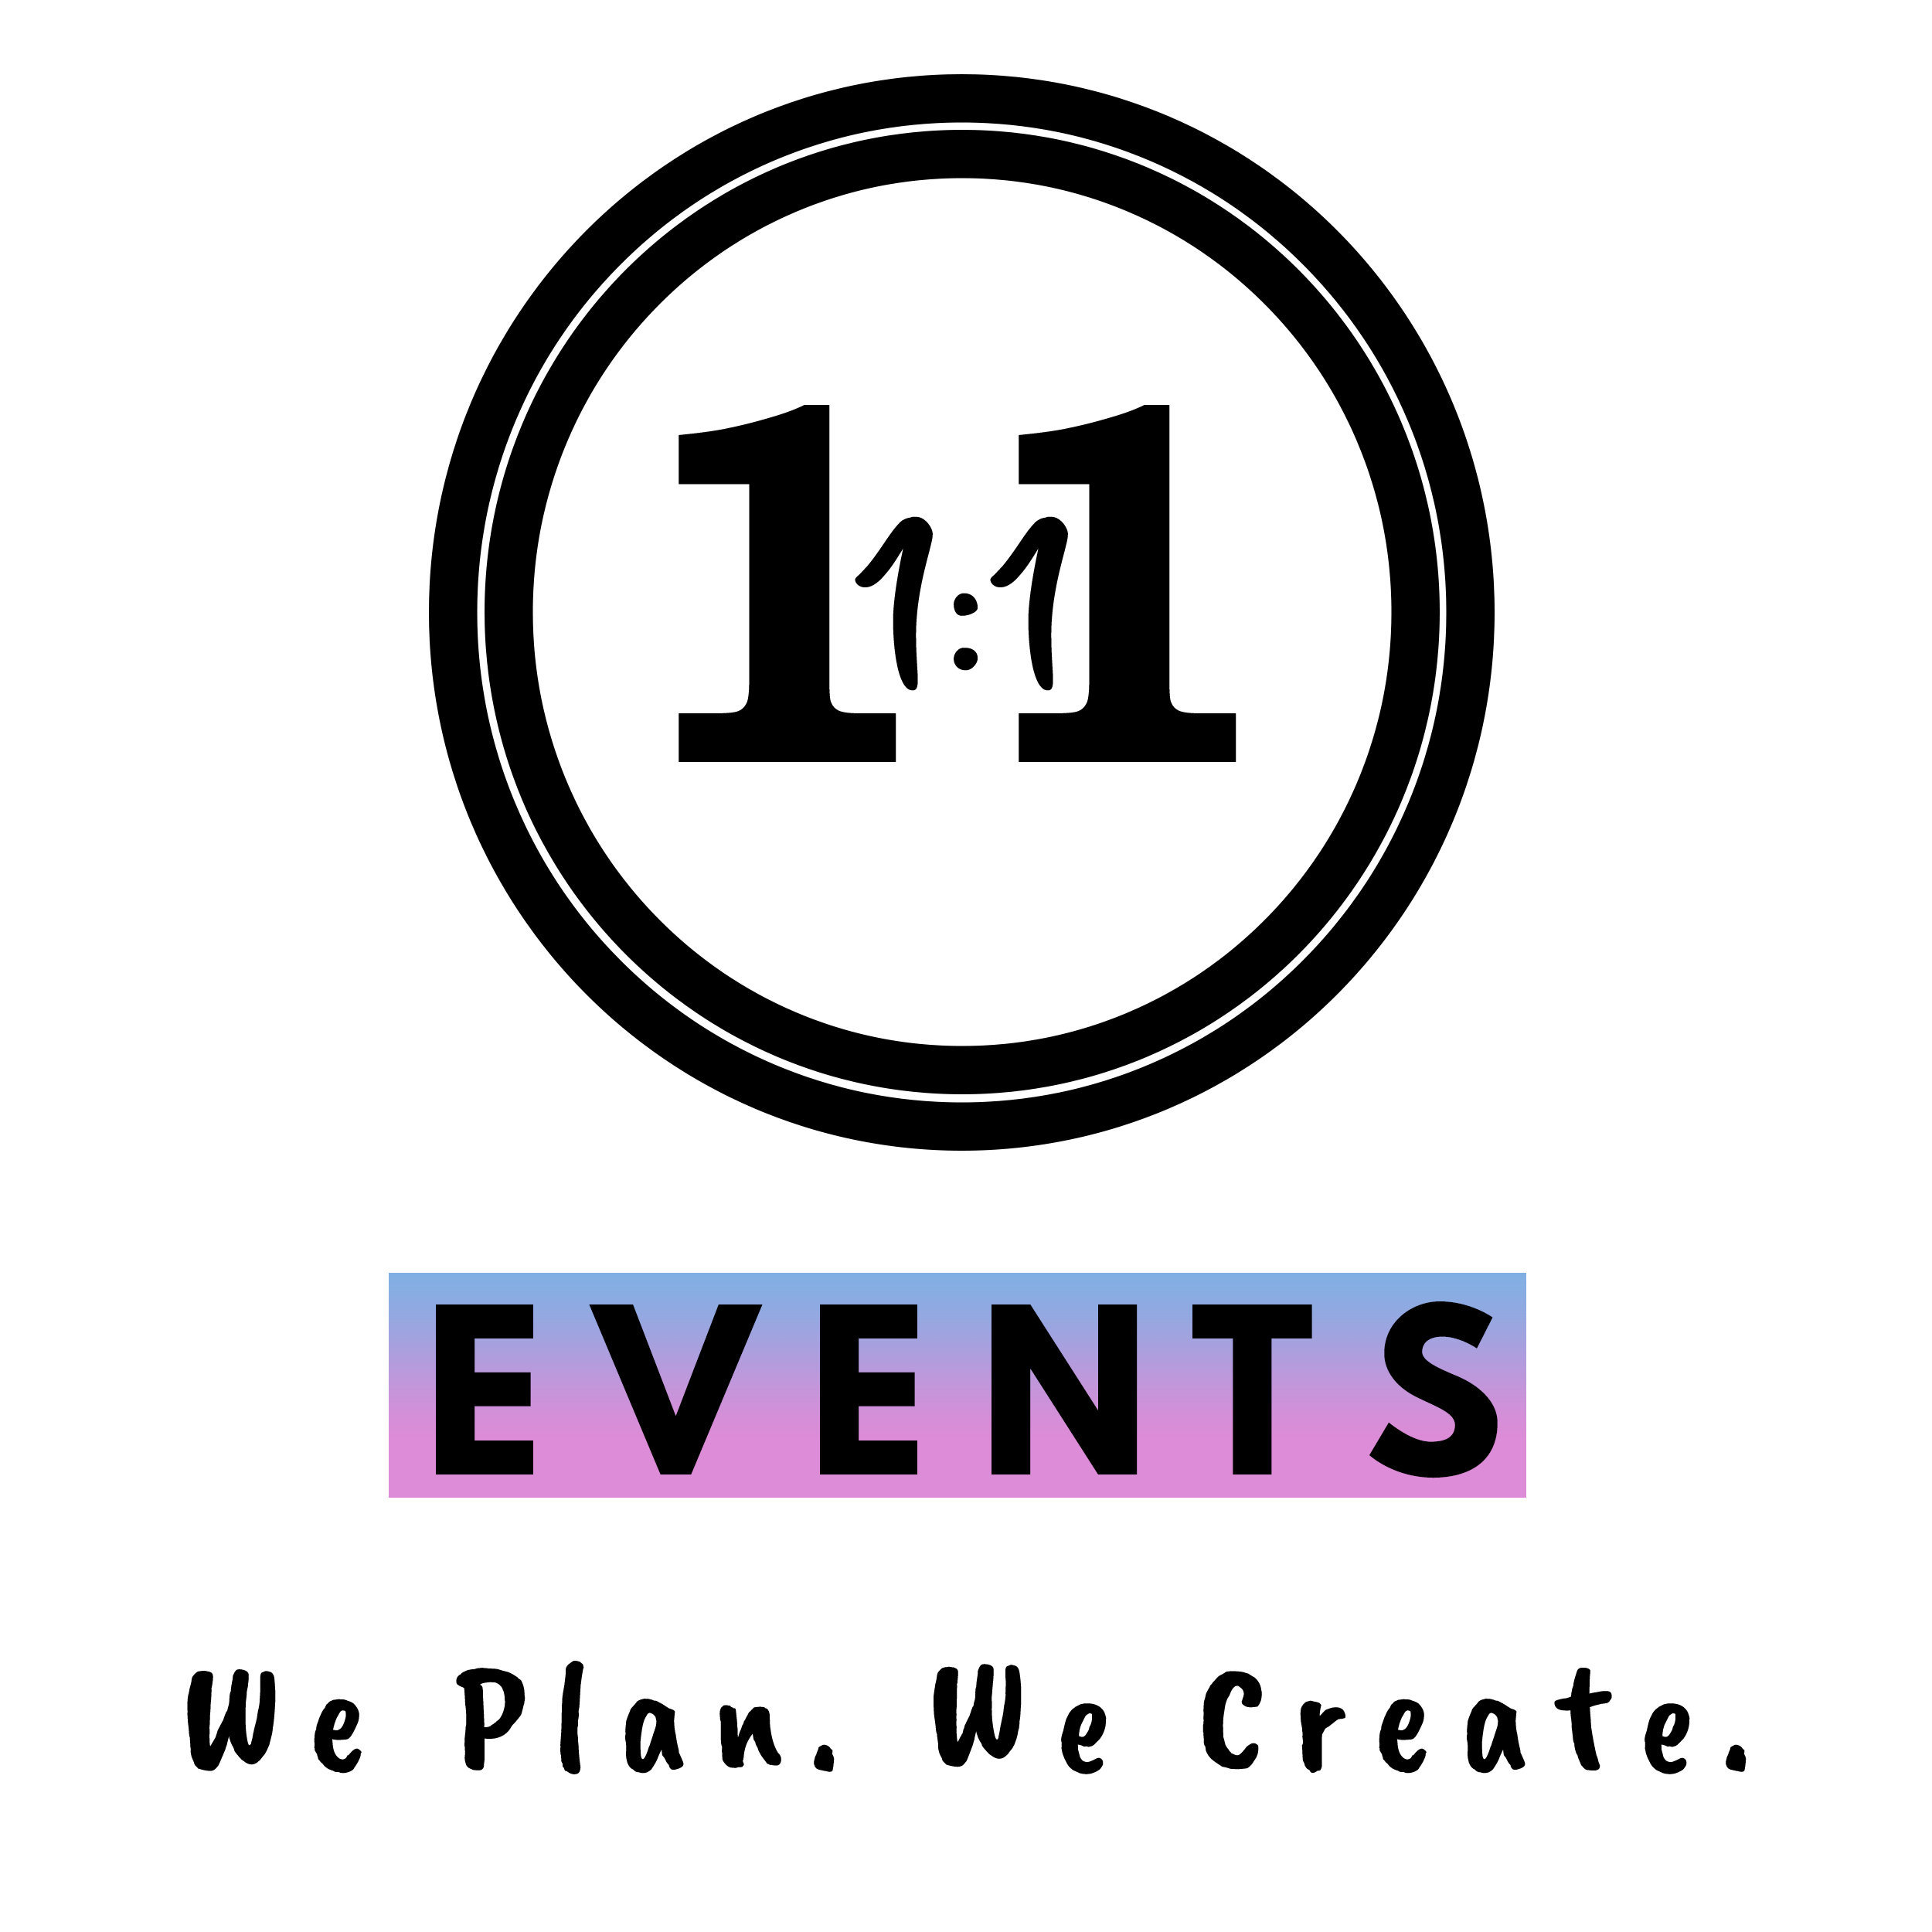 11.11 events